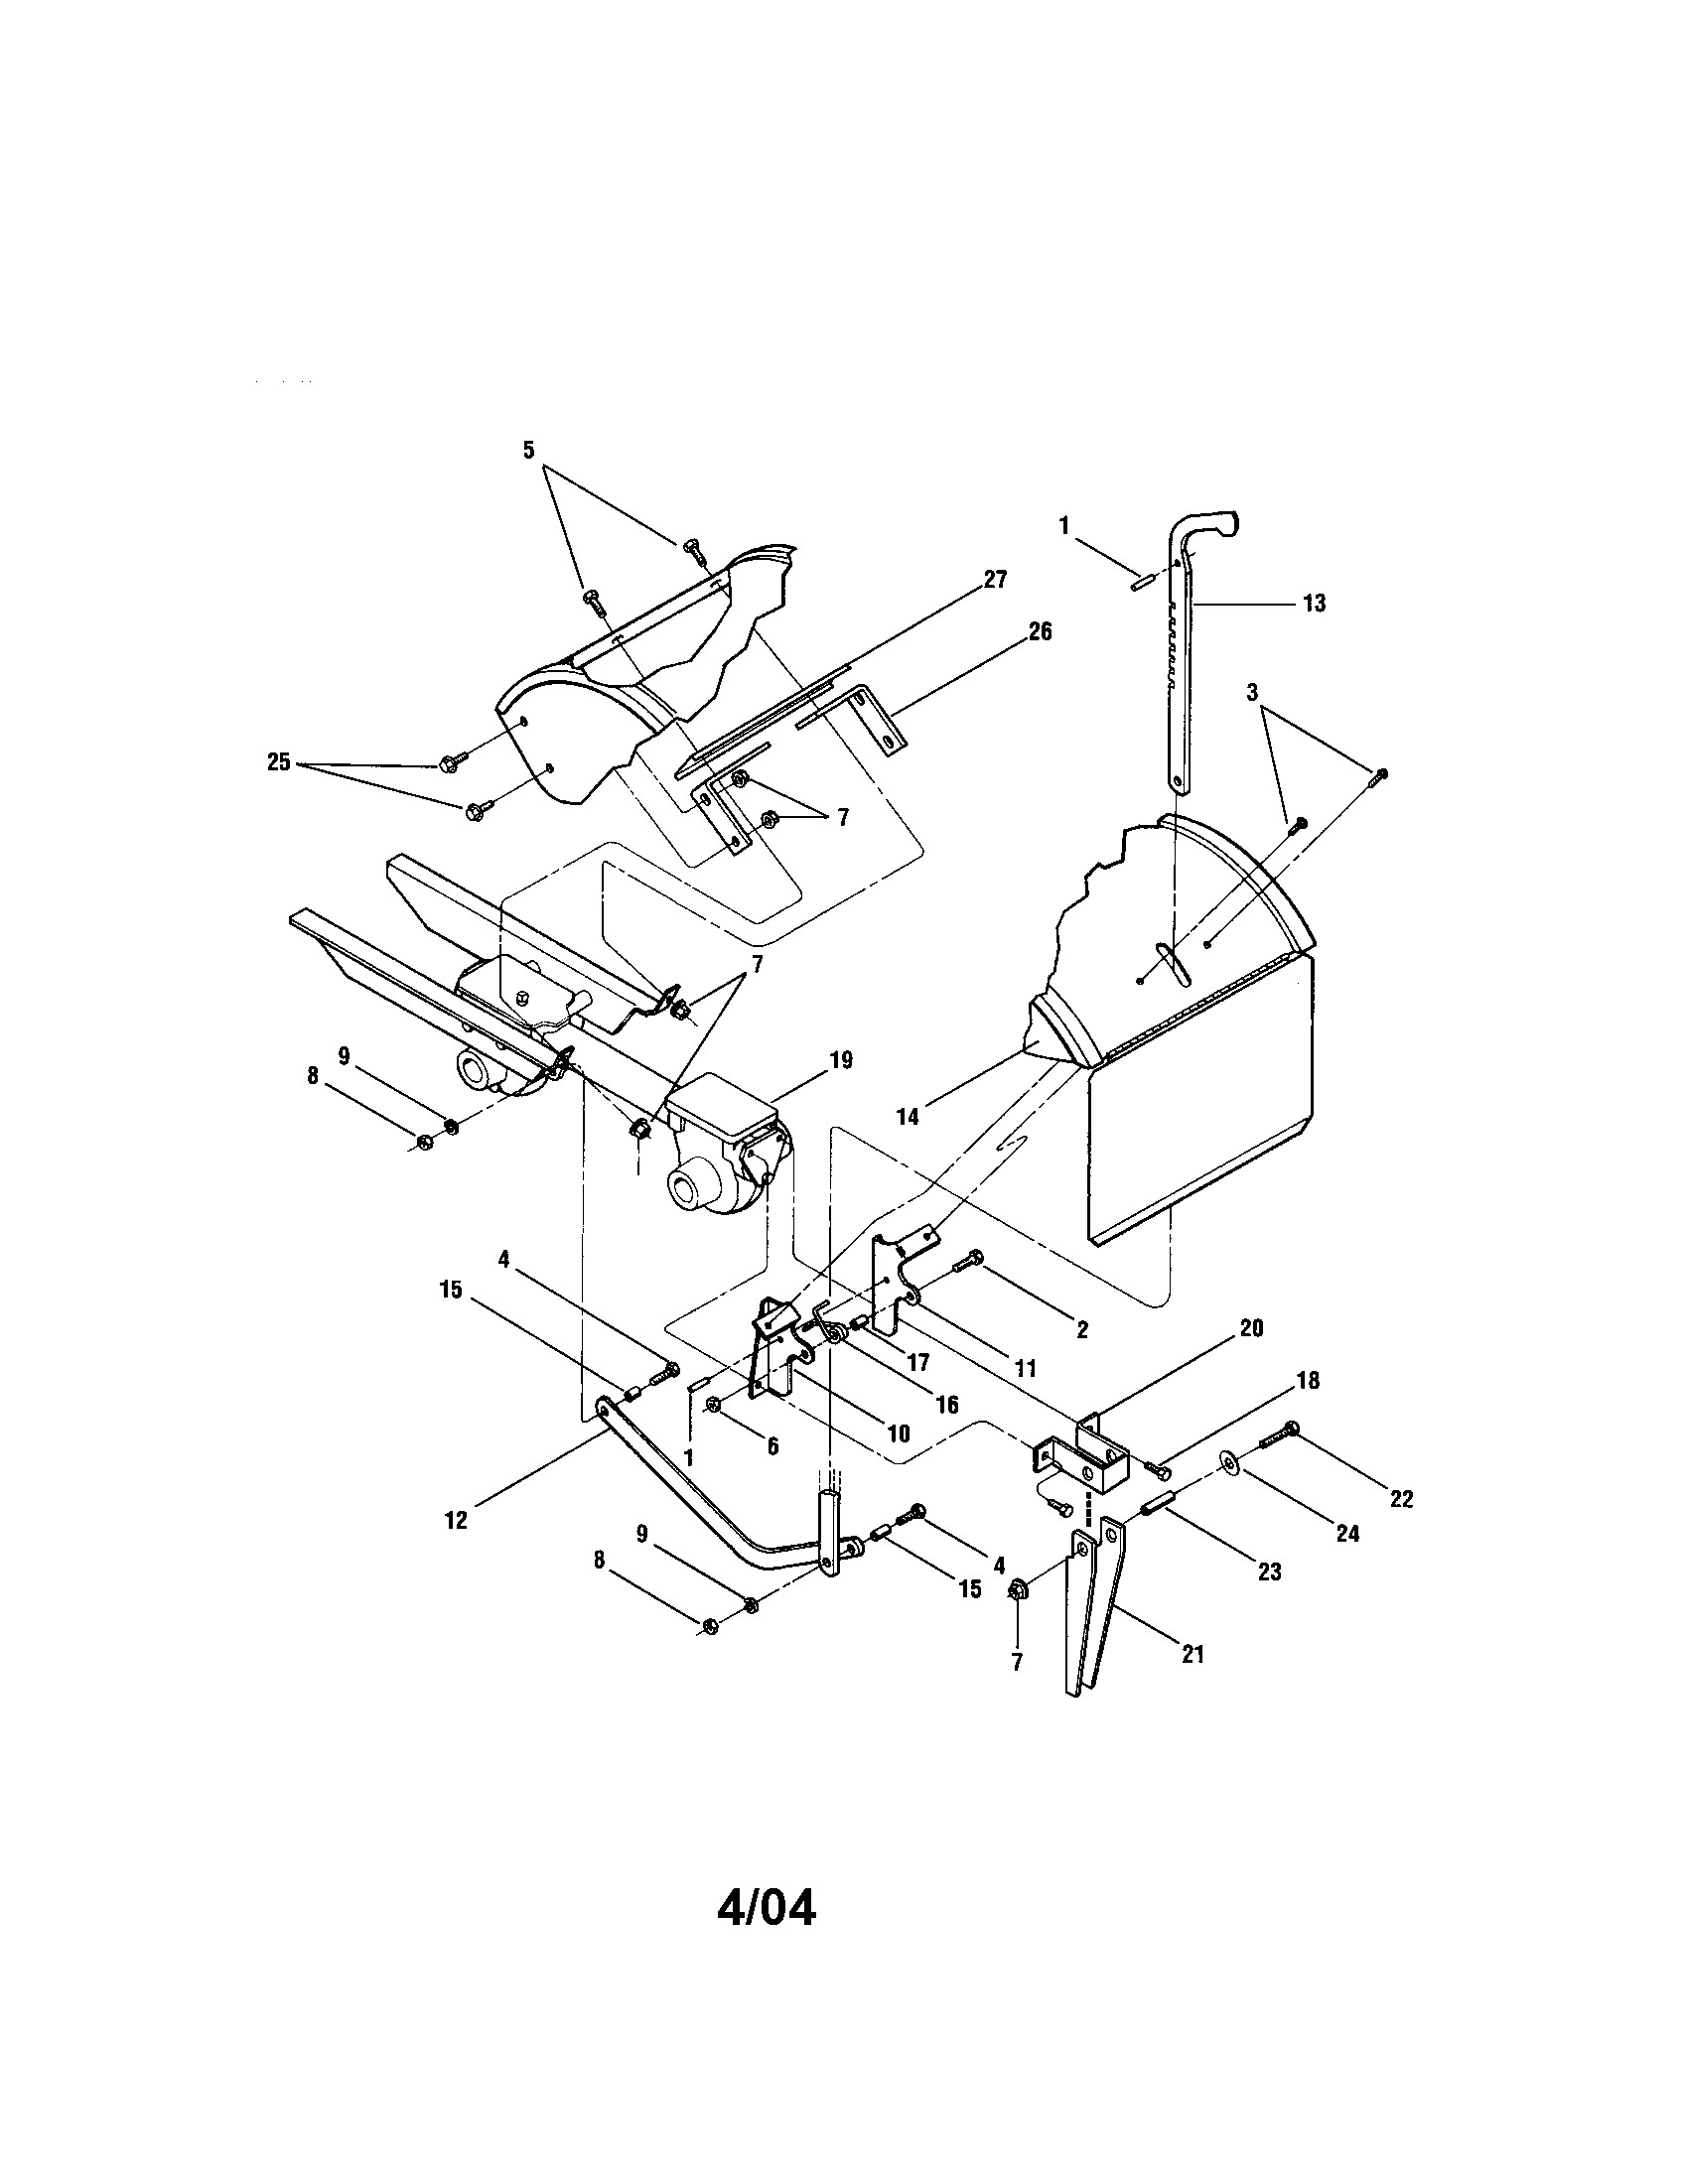 Craftsman Tiller Parts Diagram Troybilt Tiller Parts Model 645a Of Craftsman Tiller Parts Diagram